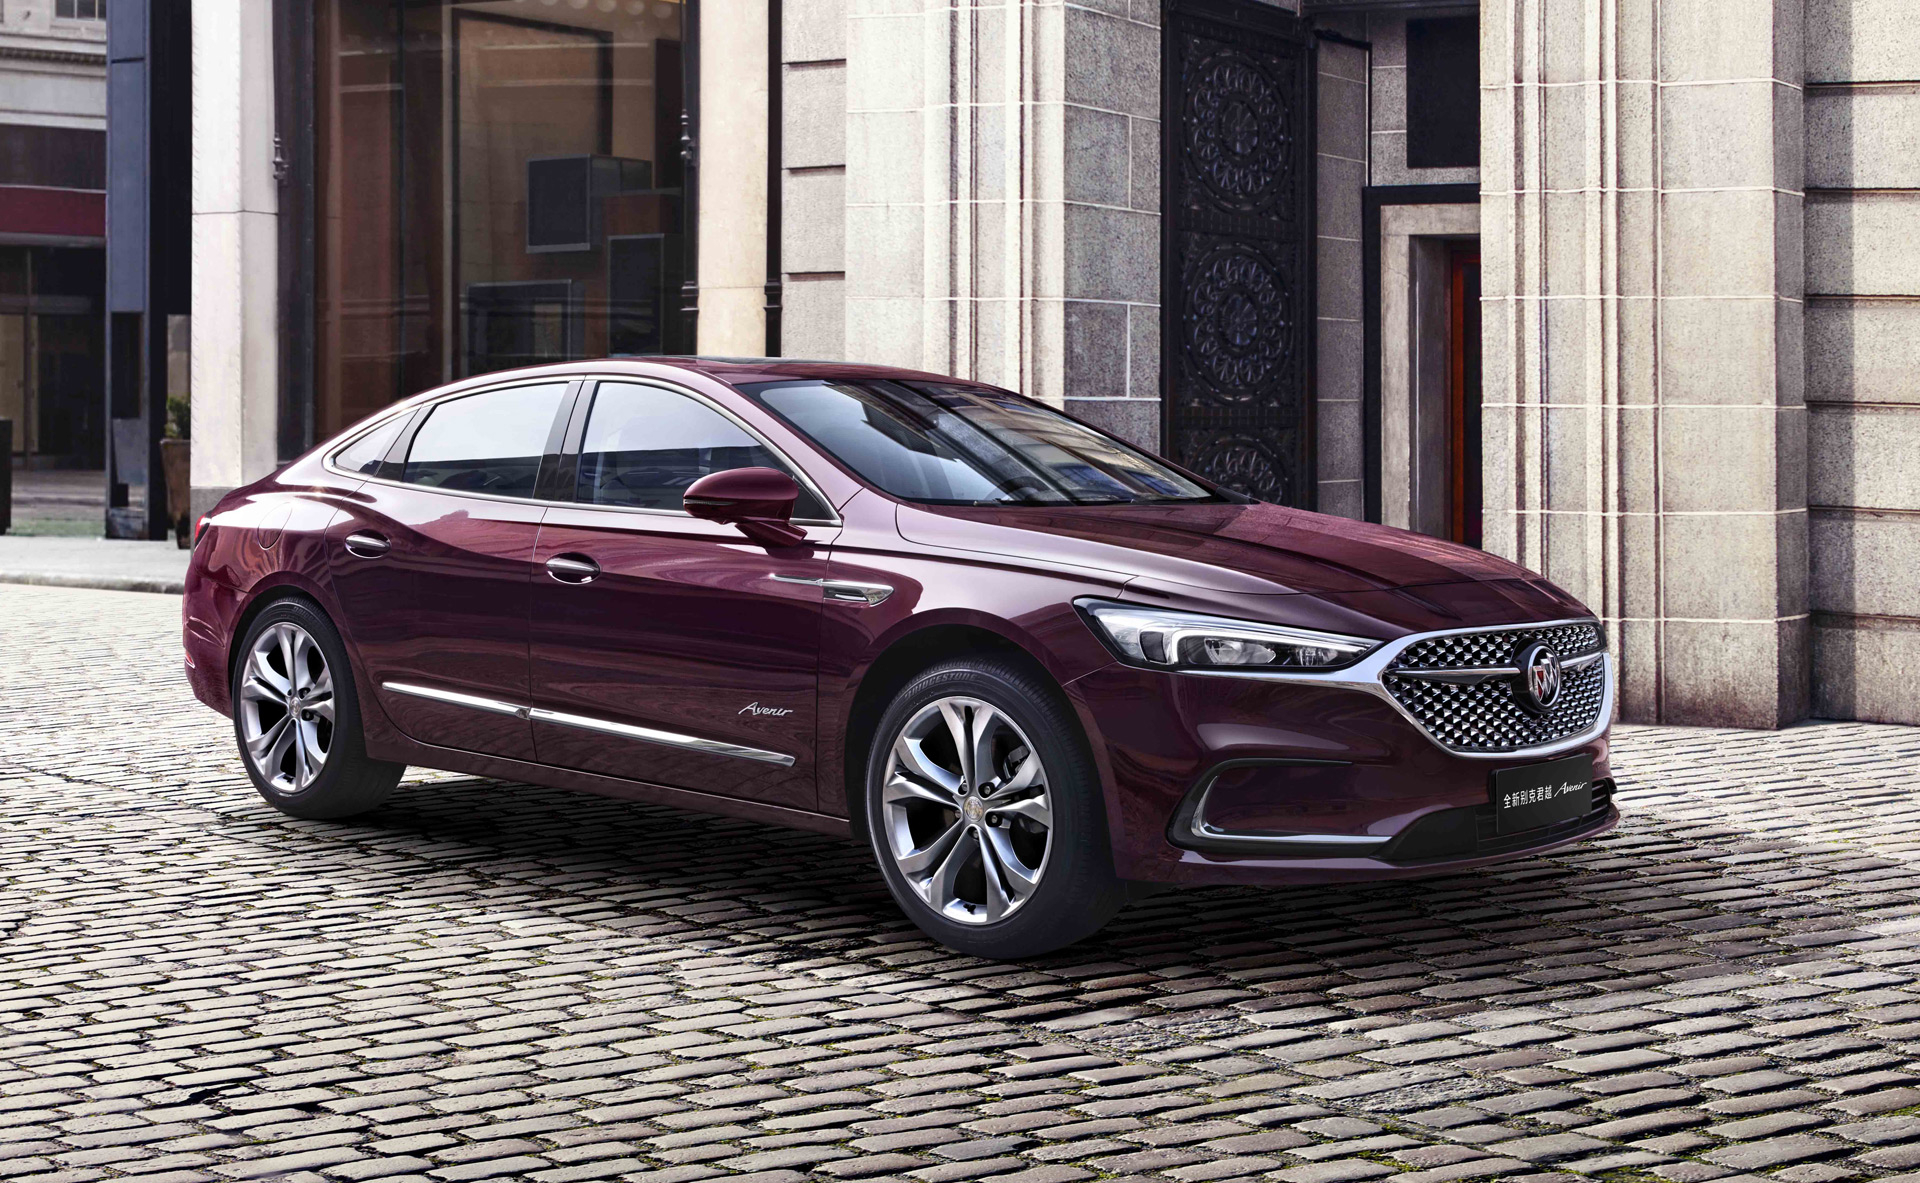 2020 Buick Lacrosse Made Handsome Just As It's Dropped In Us Cost Of A 2021 Buick Lacrosse